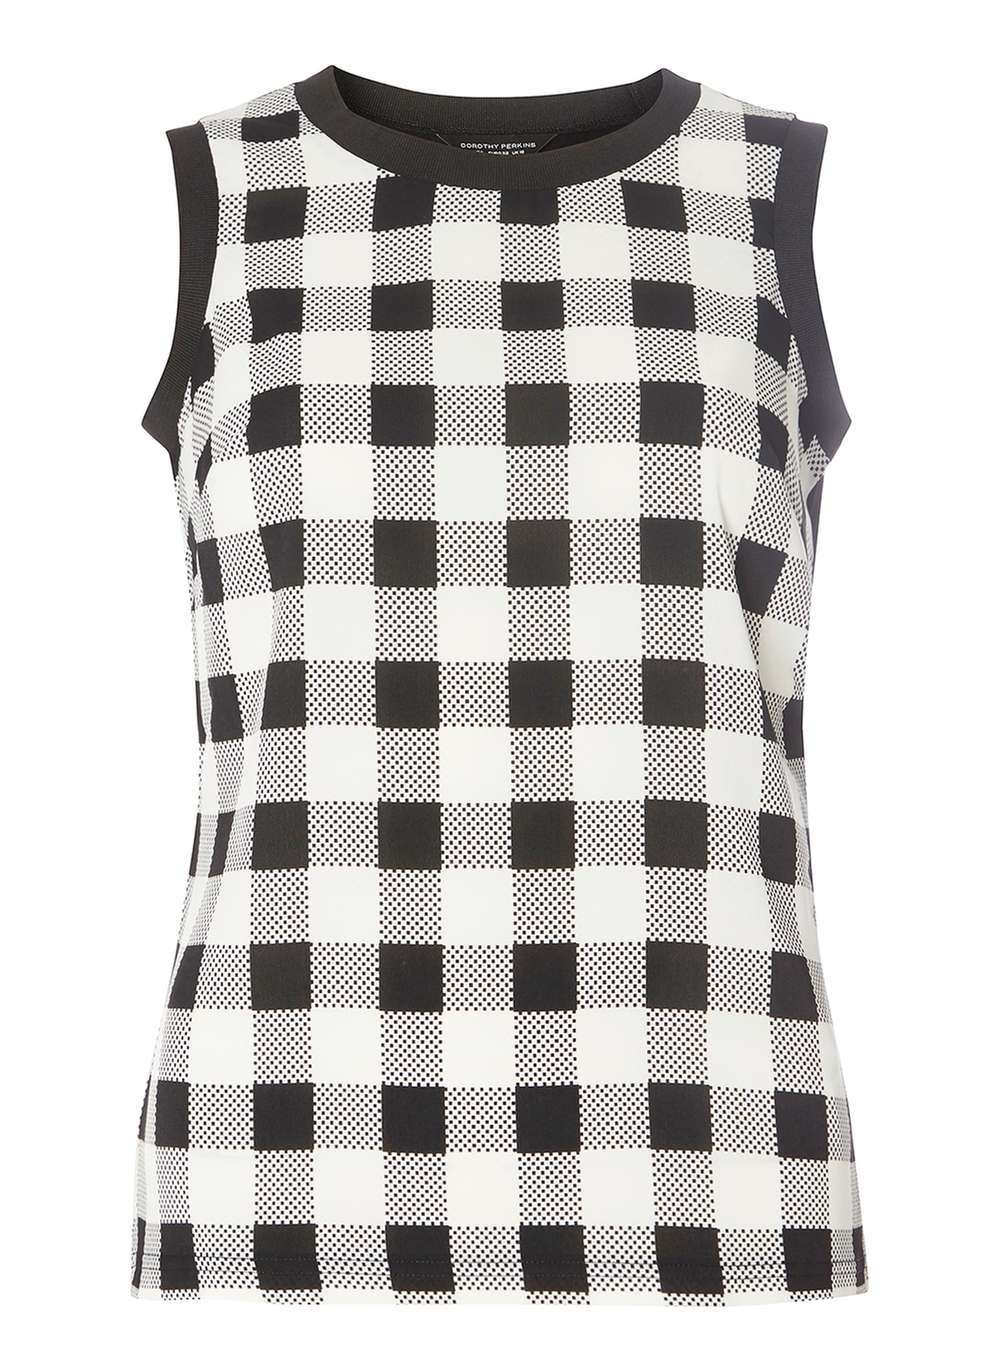 Womens Black And White Check Shell Top Black - sleeve style: sleeveless; pattern: checked/gingham; secondary colour: white; predominant colour: black; occasions: casual; length: standard; style: top; fibres: polyester/polyamide - 100%; fit: body skimming; neckline: crew; sleeve length: sleeveless; pattern type: fabric; texture group: jersey - stretchy/drapey; season: a/w 2016